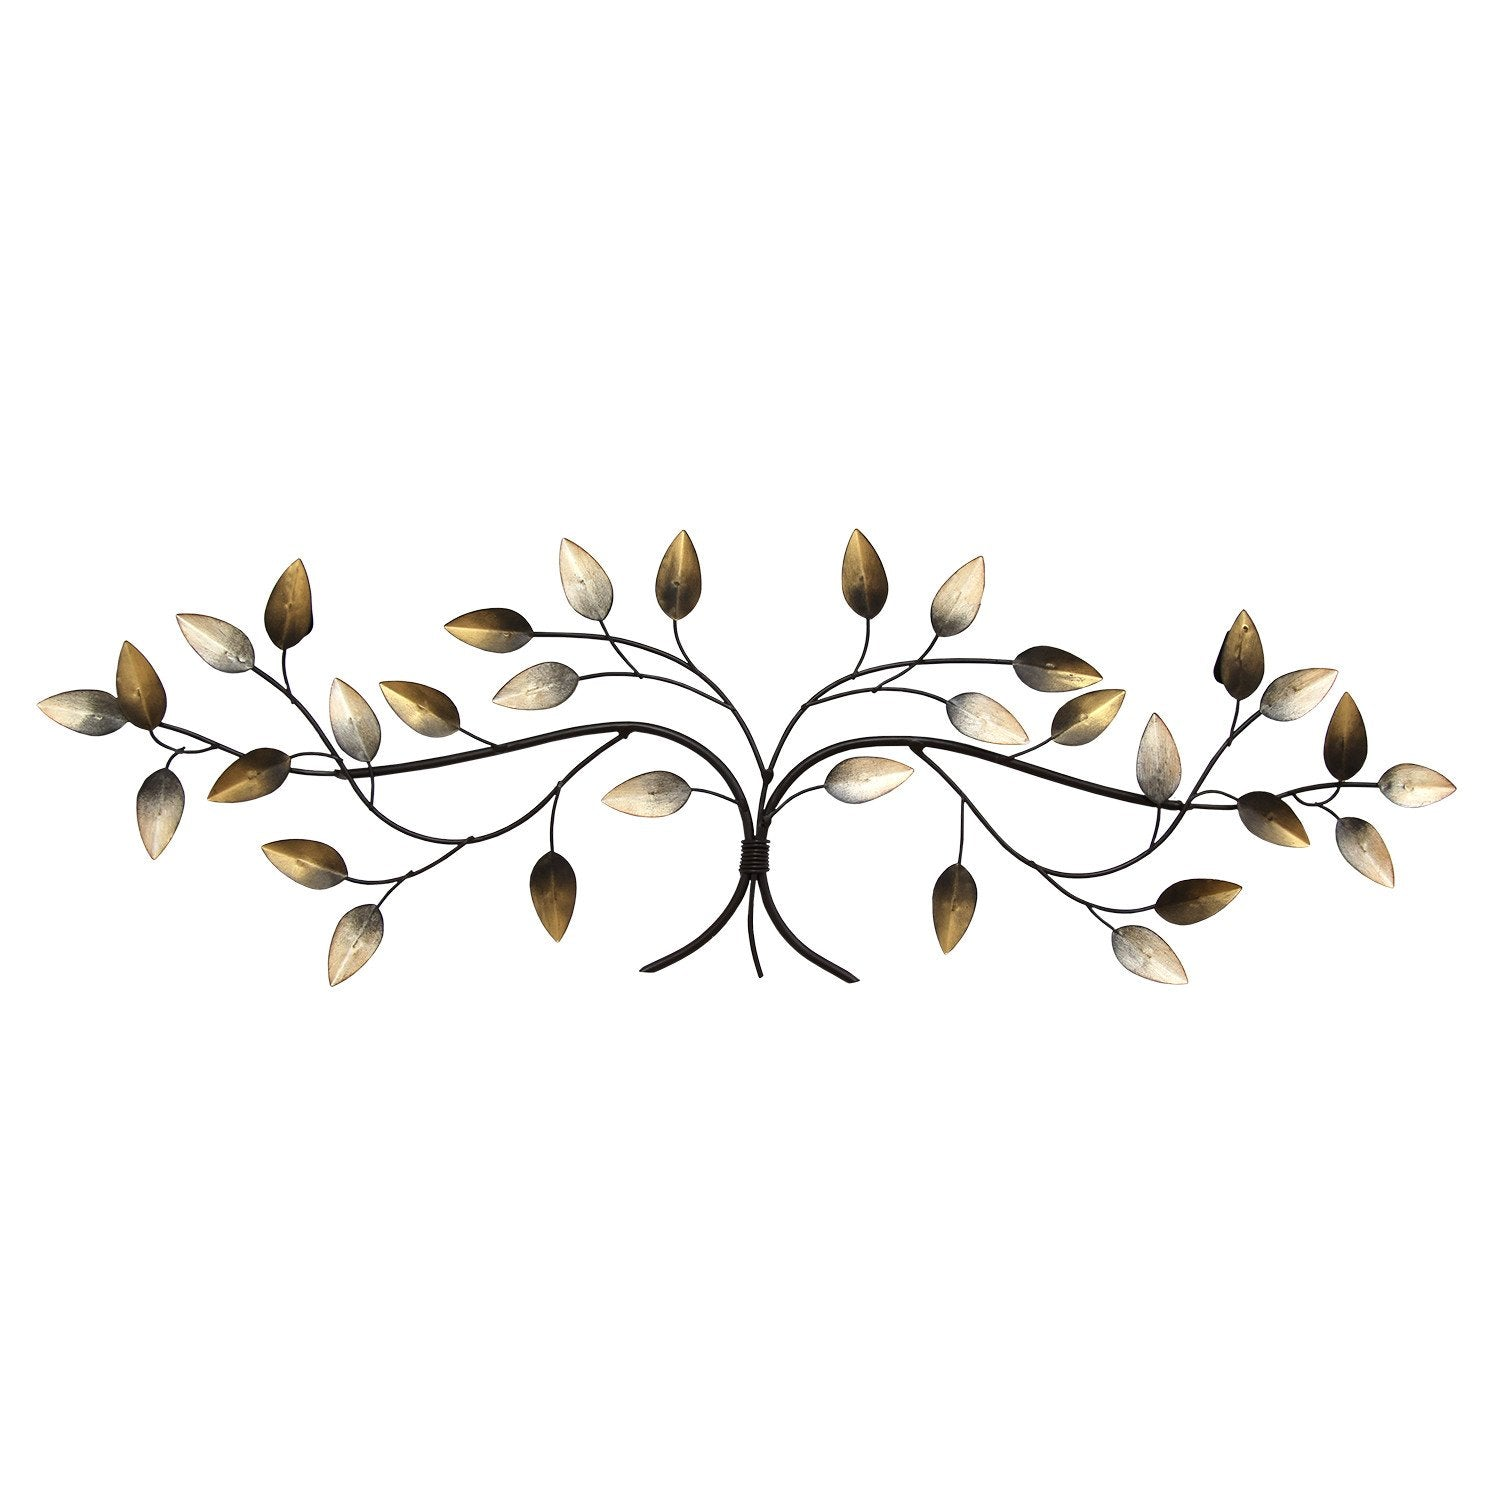 "31.89"" X 1.18"" X 10.63"" Over The Door Blowing Leaves Wall Decor"